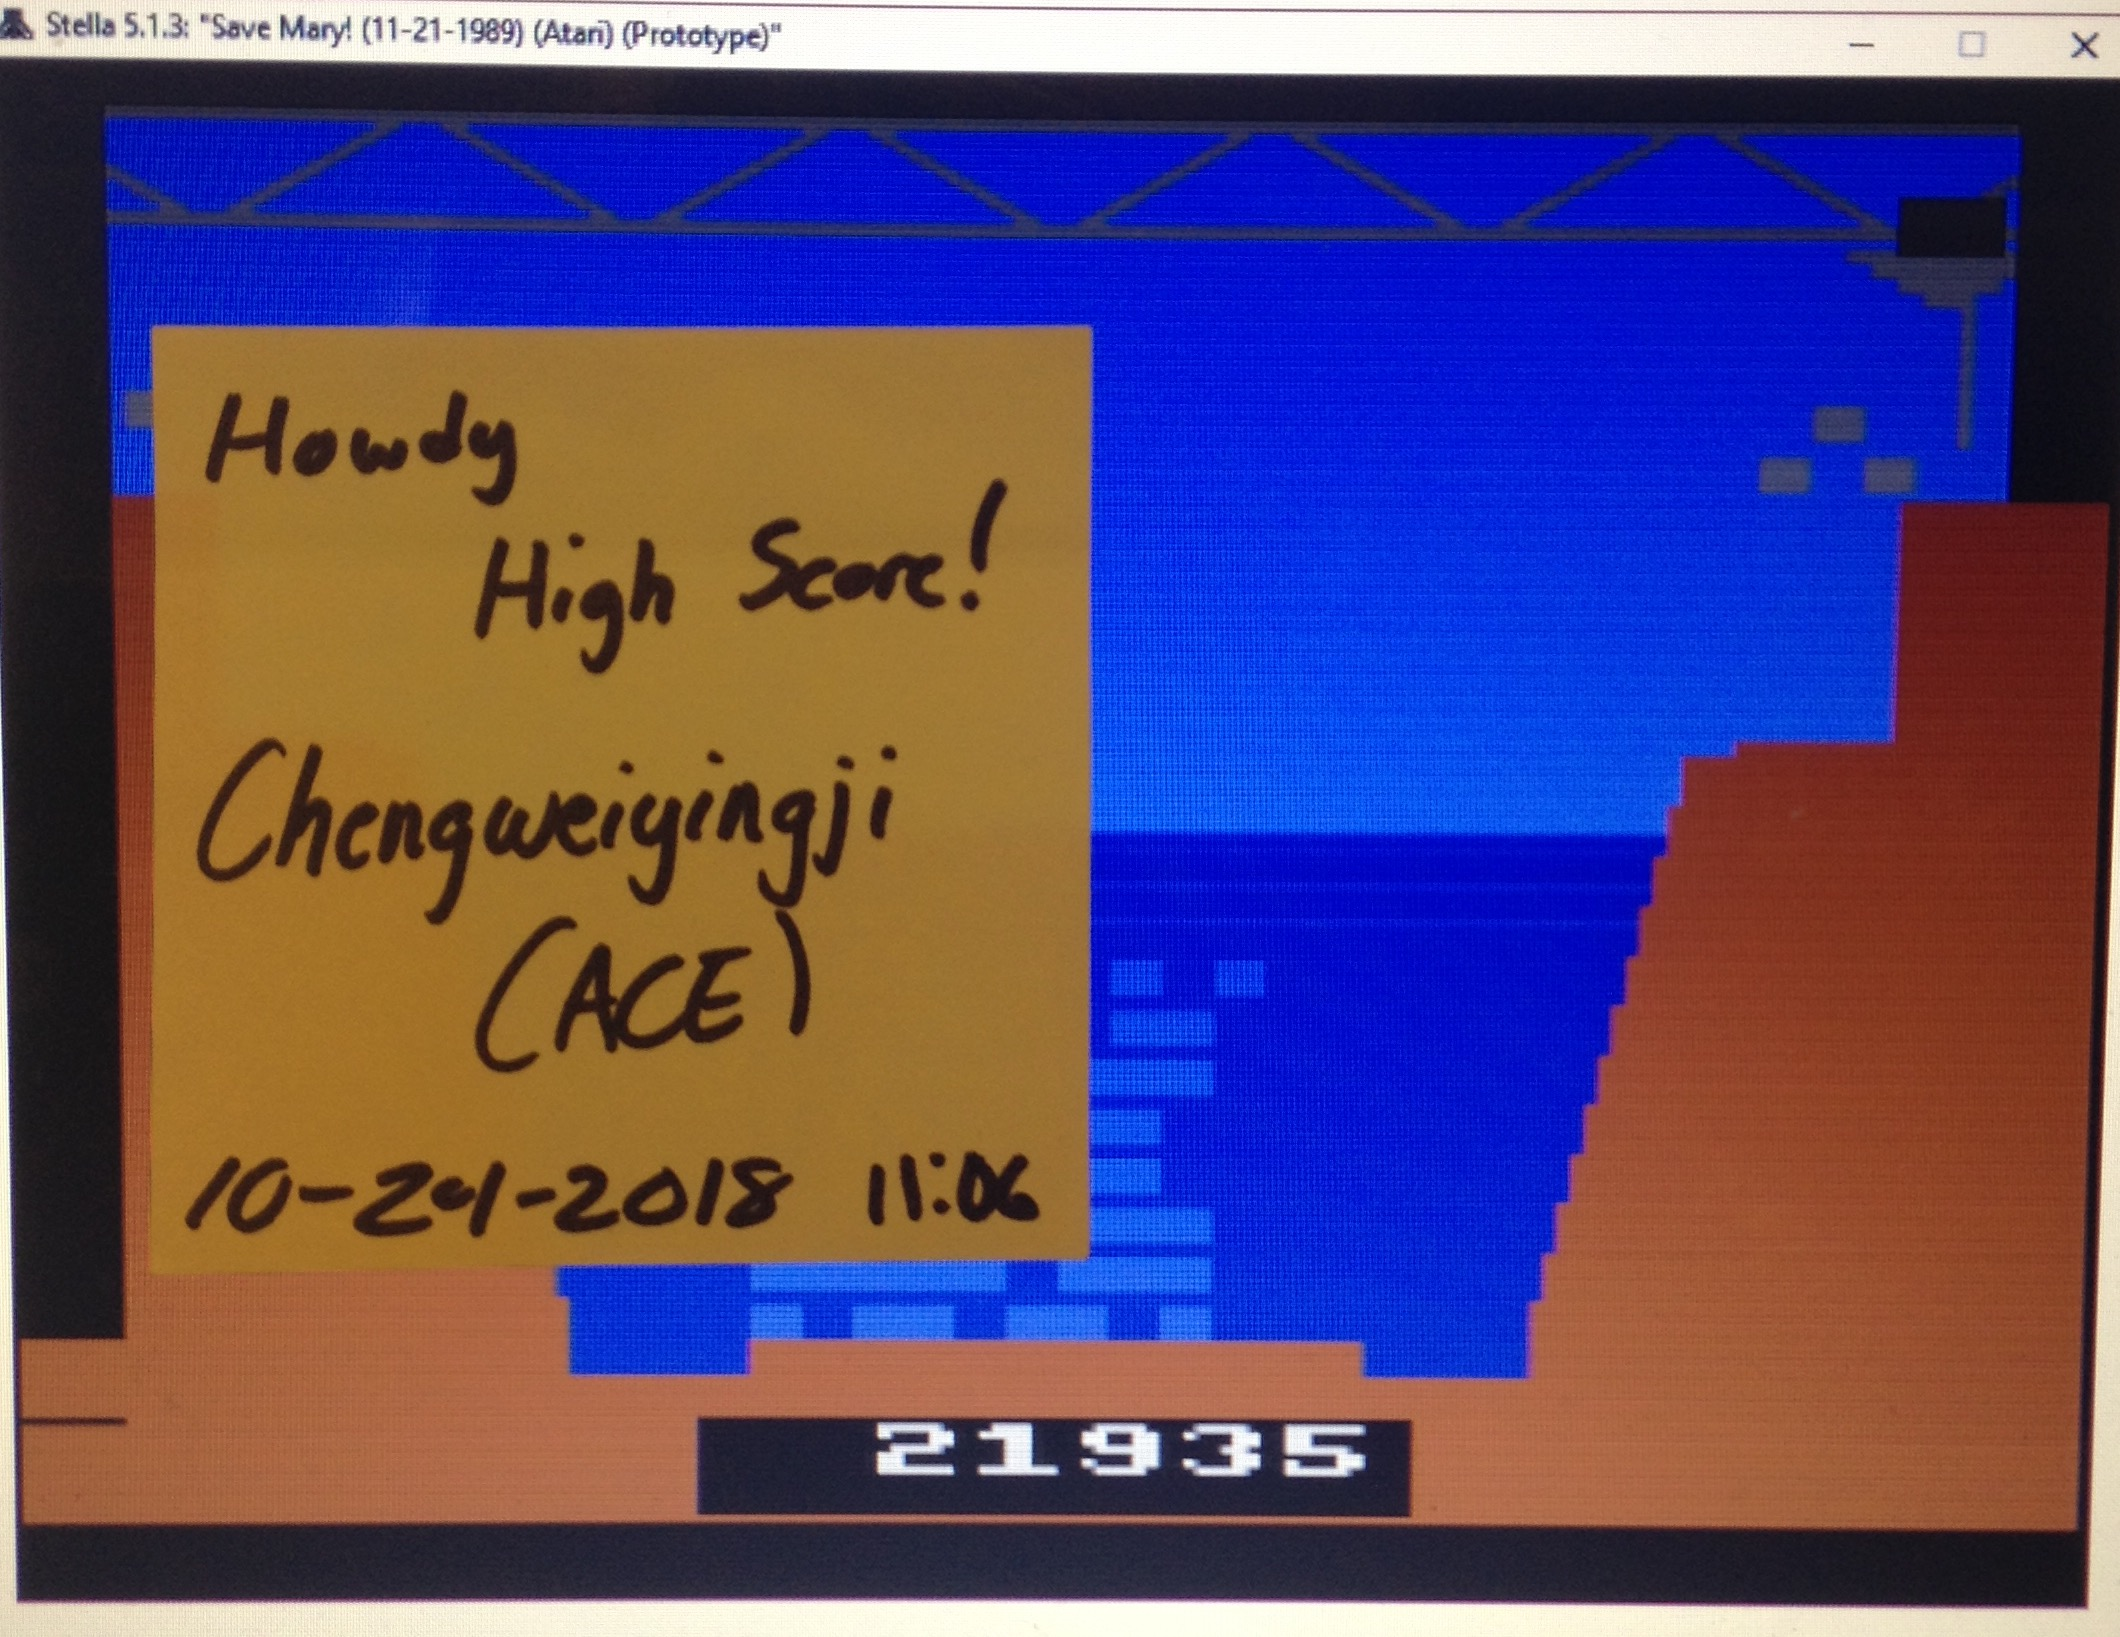 chengweiyingji: Save Mary [Standard] (Atari 2600 Emulated) 21,935 points on 2018-10-24 22:12:07